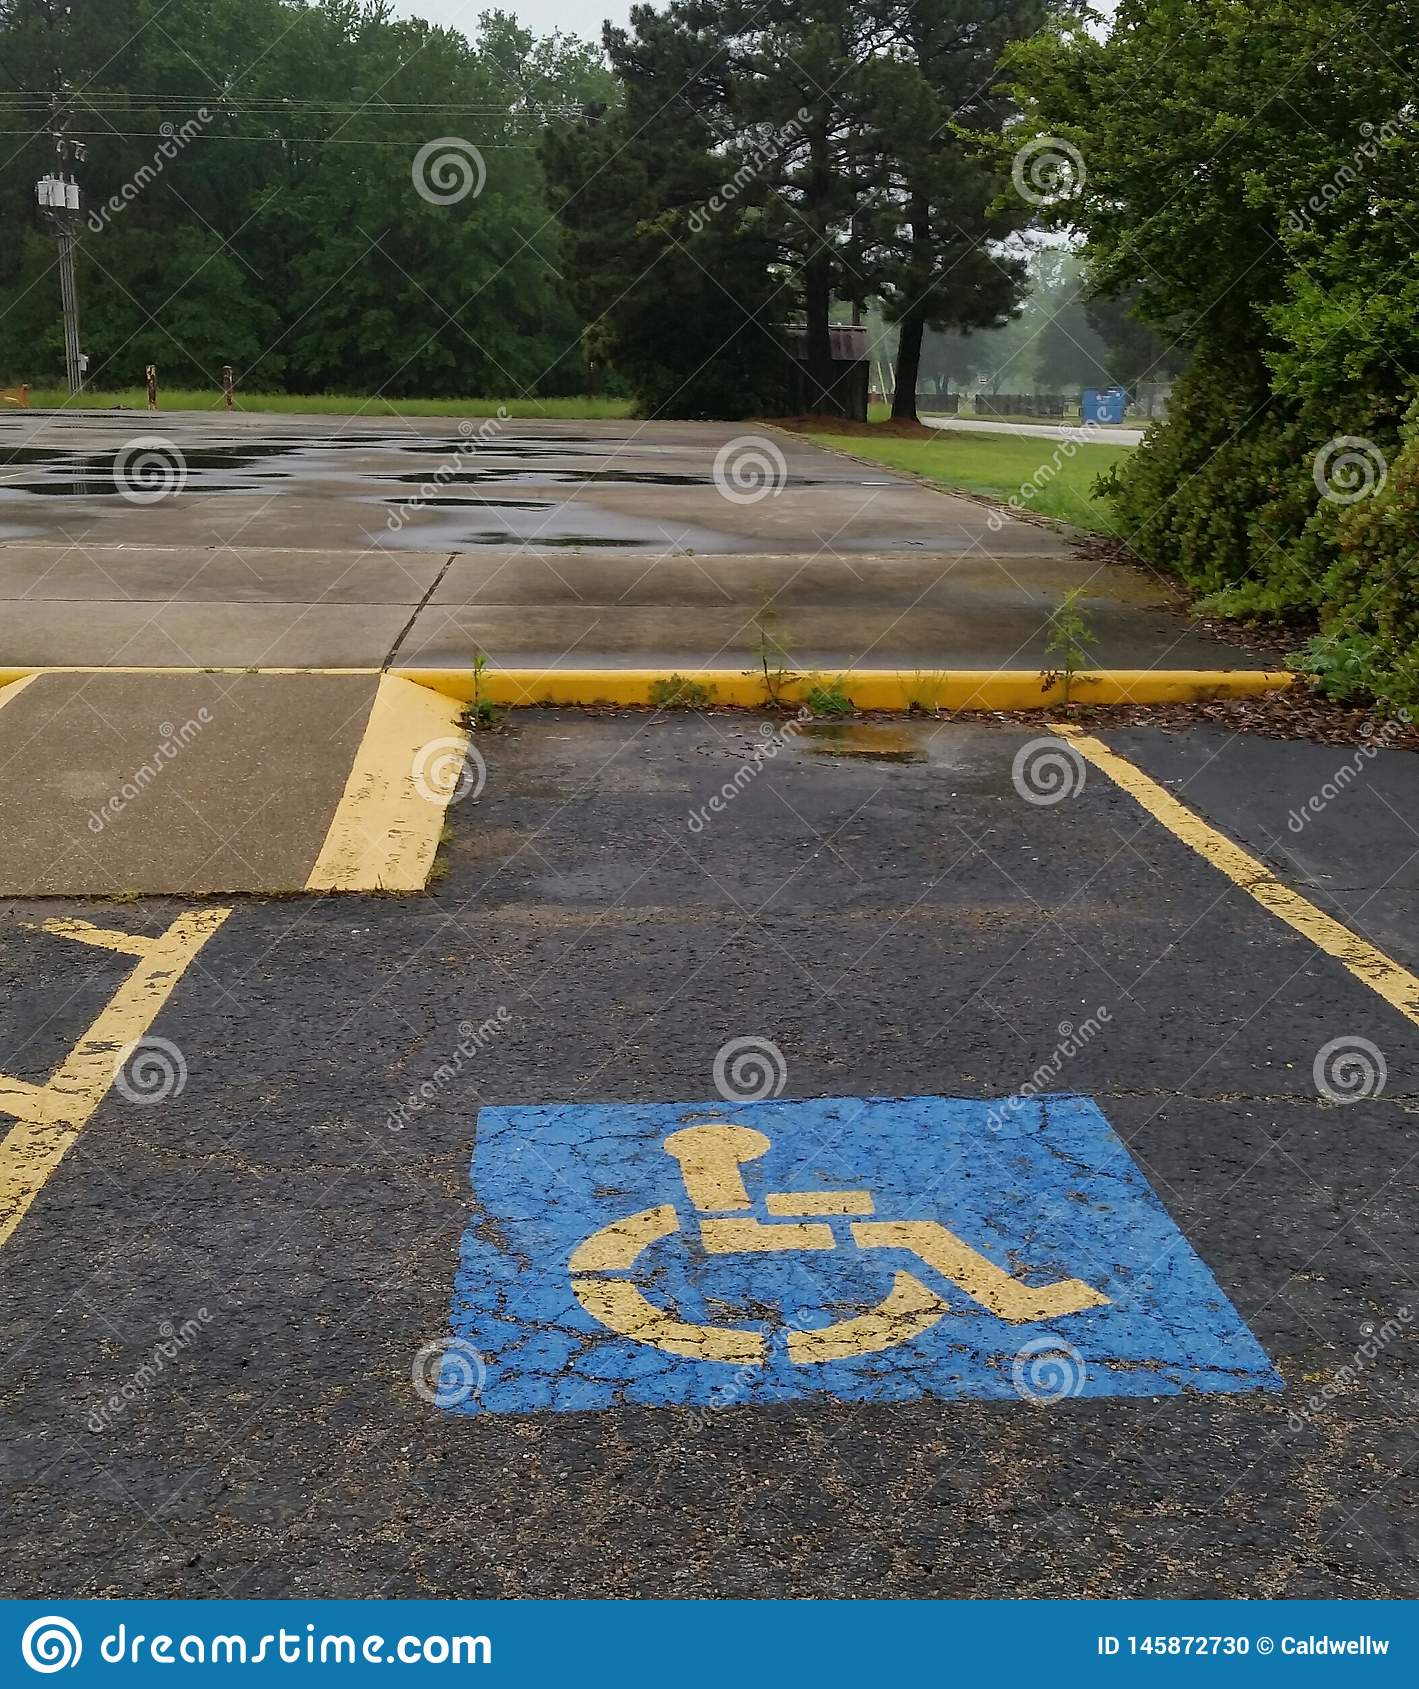 Handicap Parking Space With Ramp. This is an International Handicap Parking symbol painted on a paved parking lot With A Concrete Ramp for a wheel chair stock photo